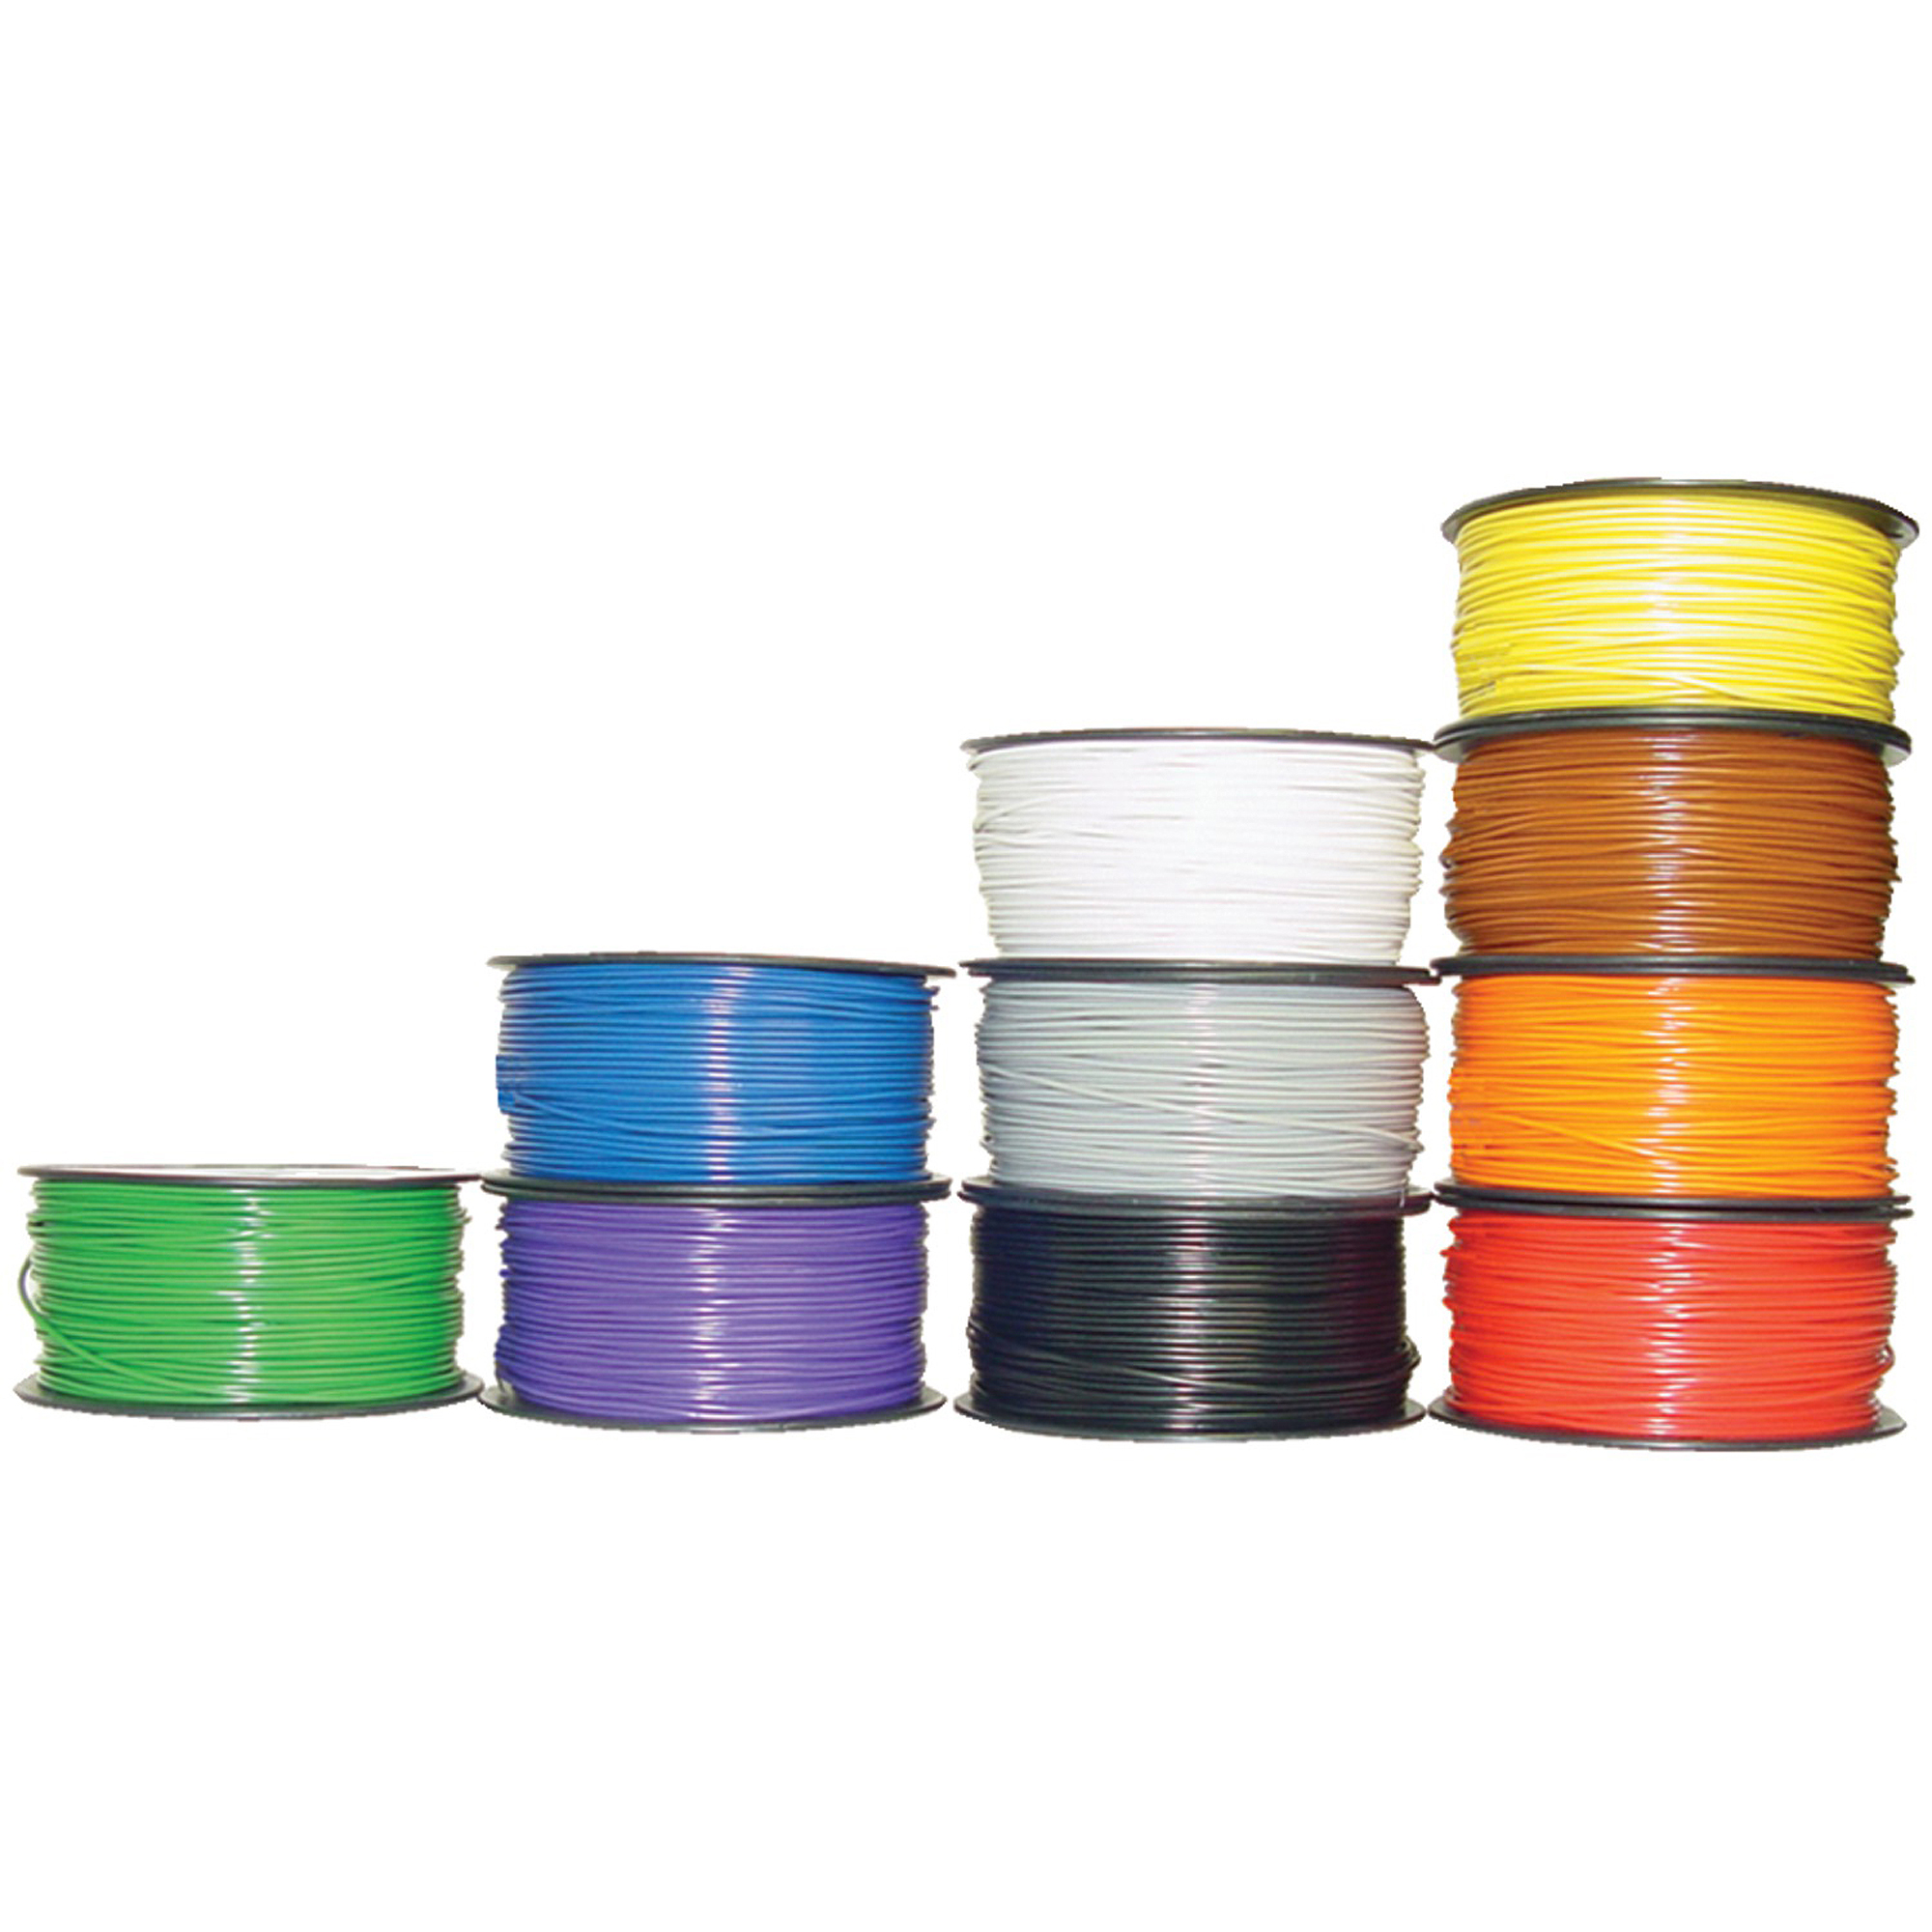 Scosche-EFX Primary Wire, 500', Assorted Colors